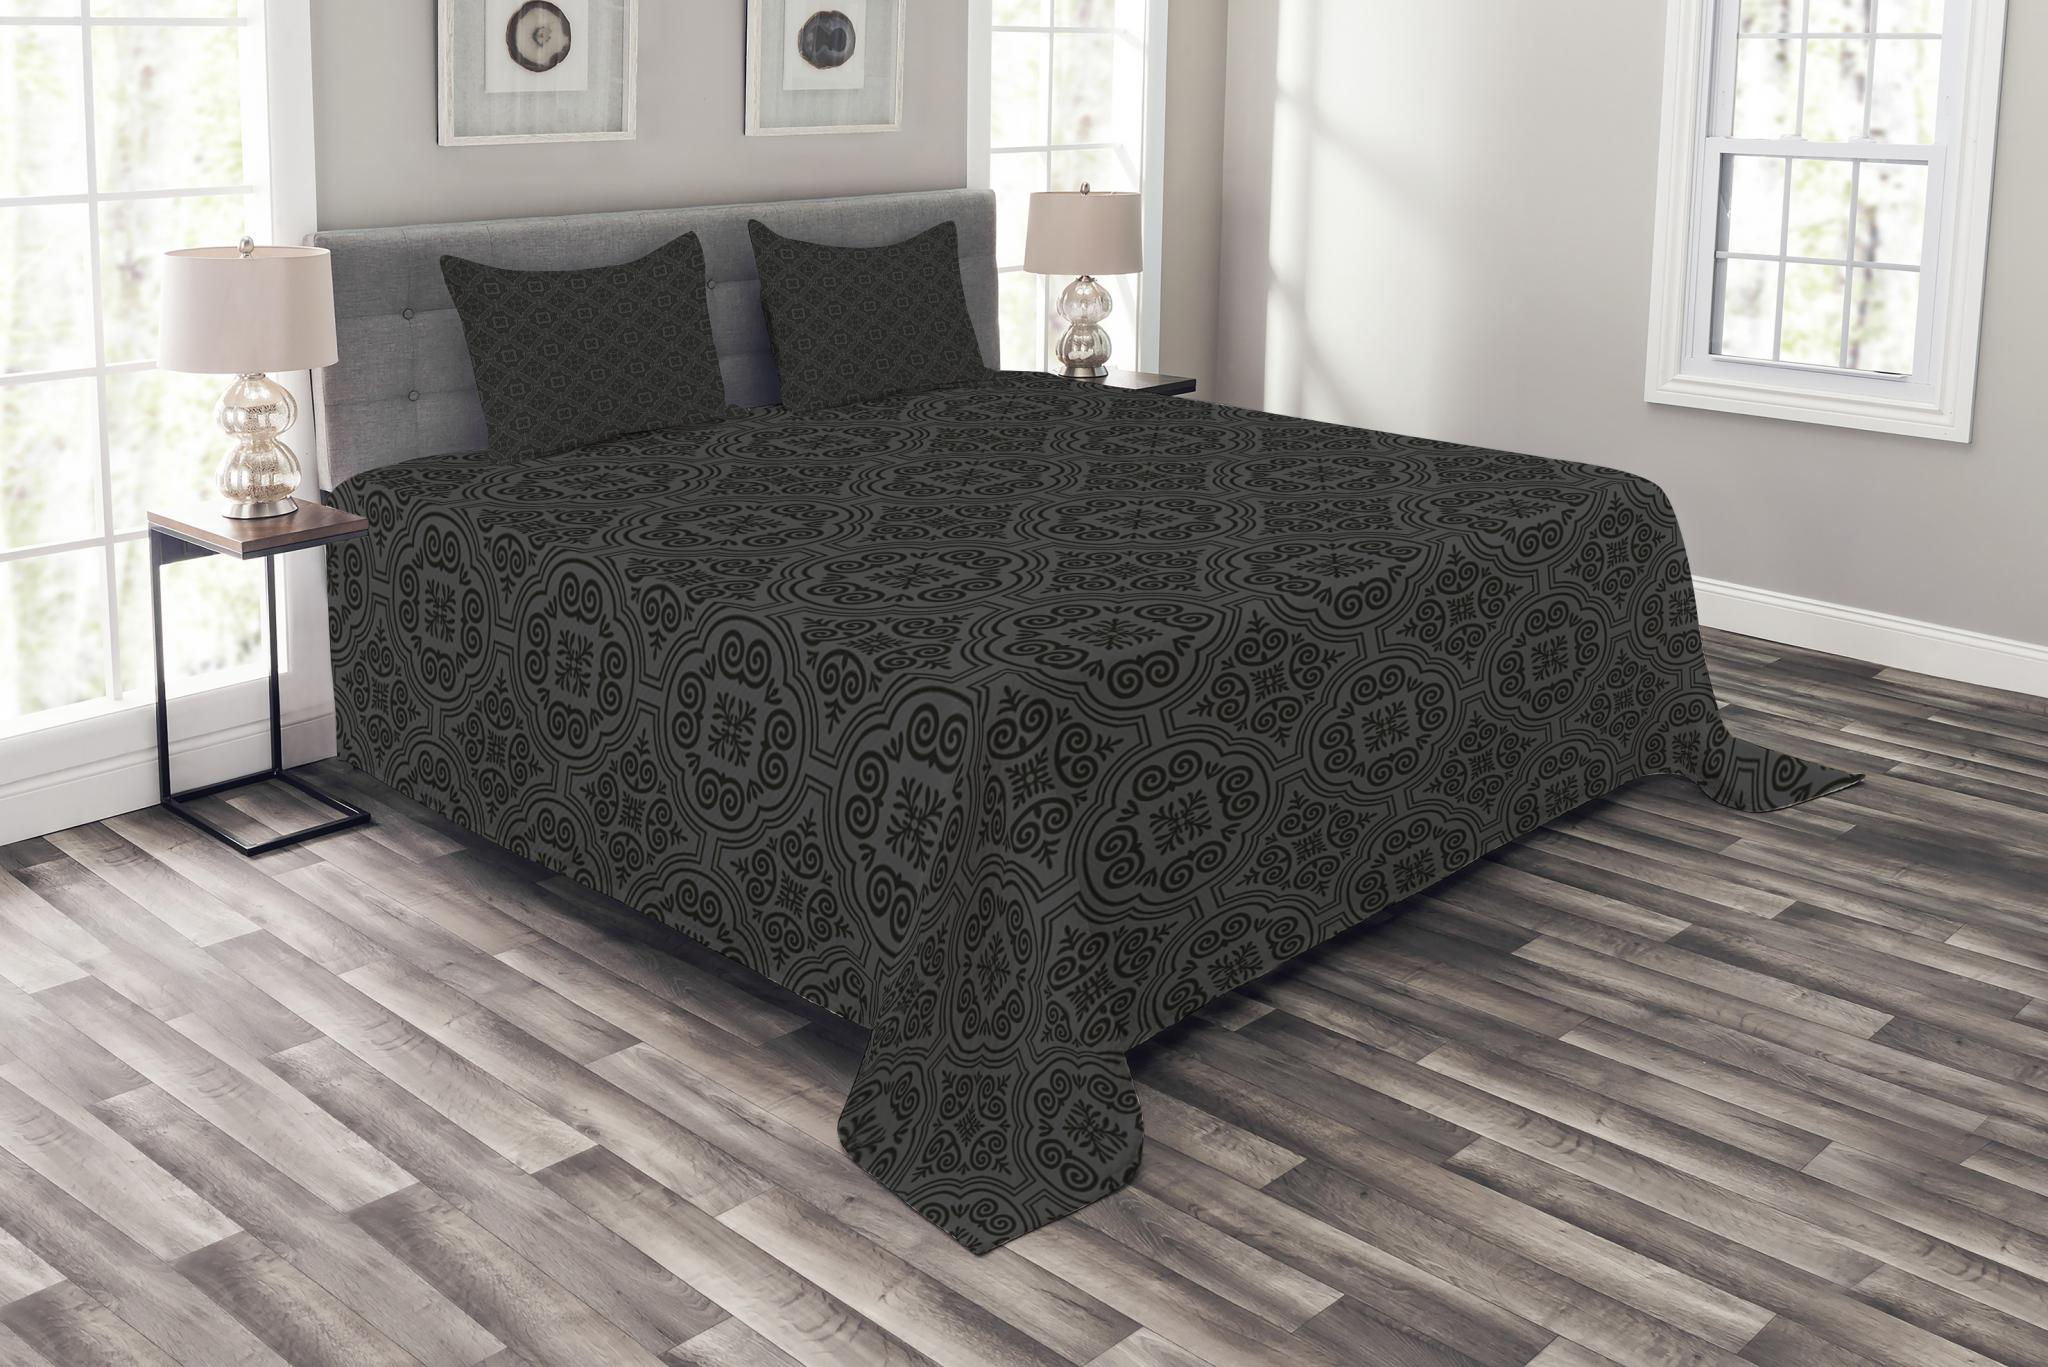 Antique Quilted Bedspread /& Pillow Shams Set Lace Gothic Pattern Print